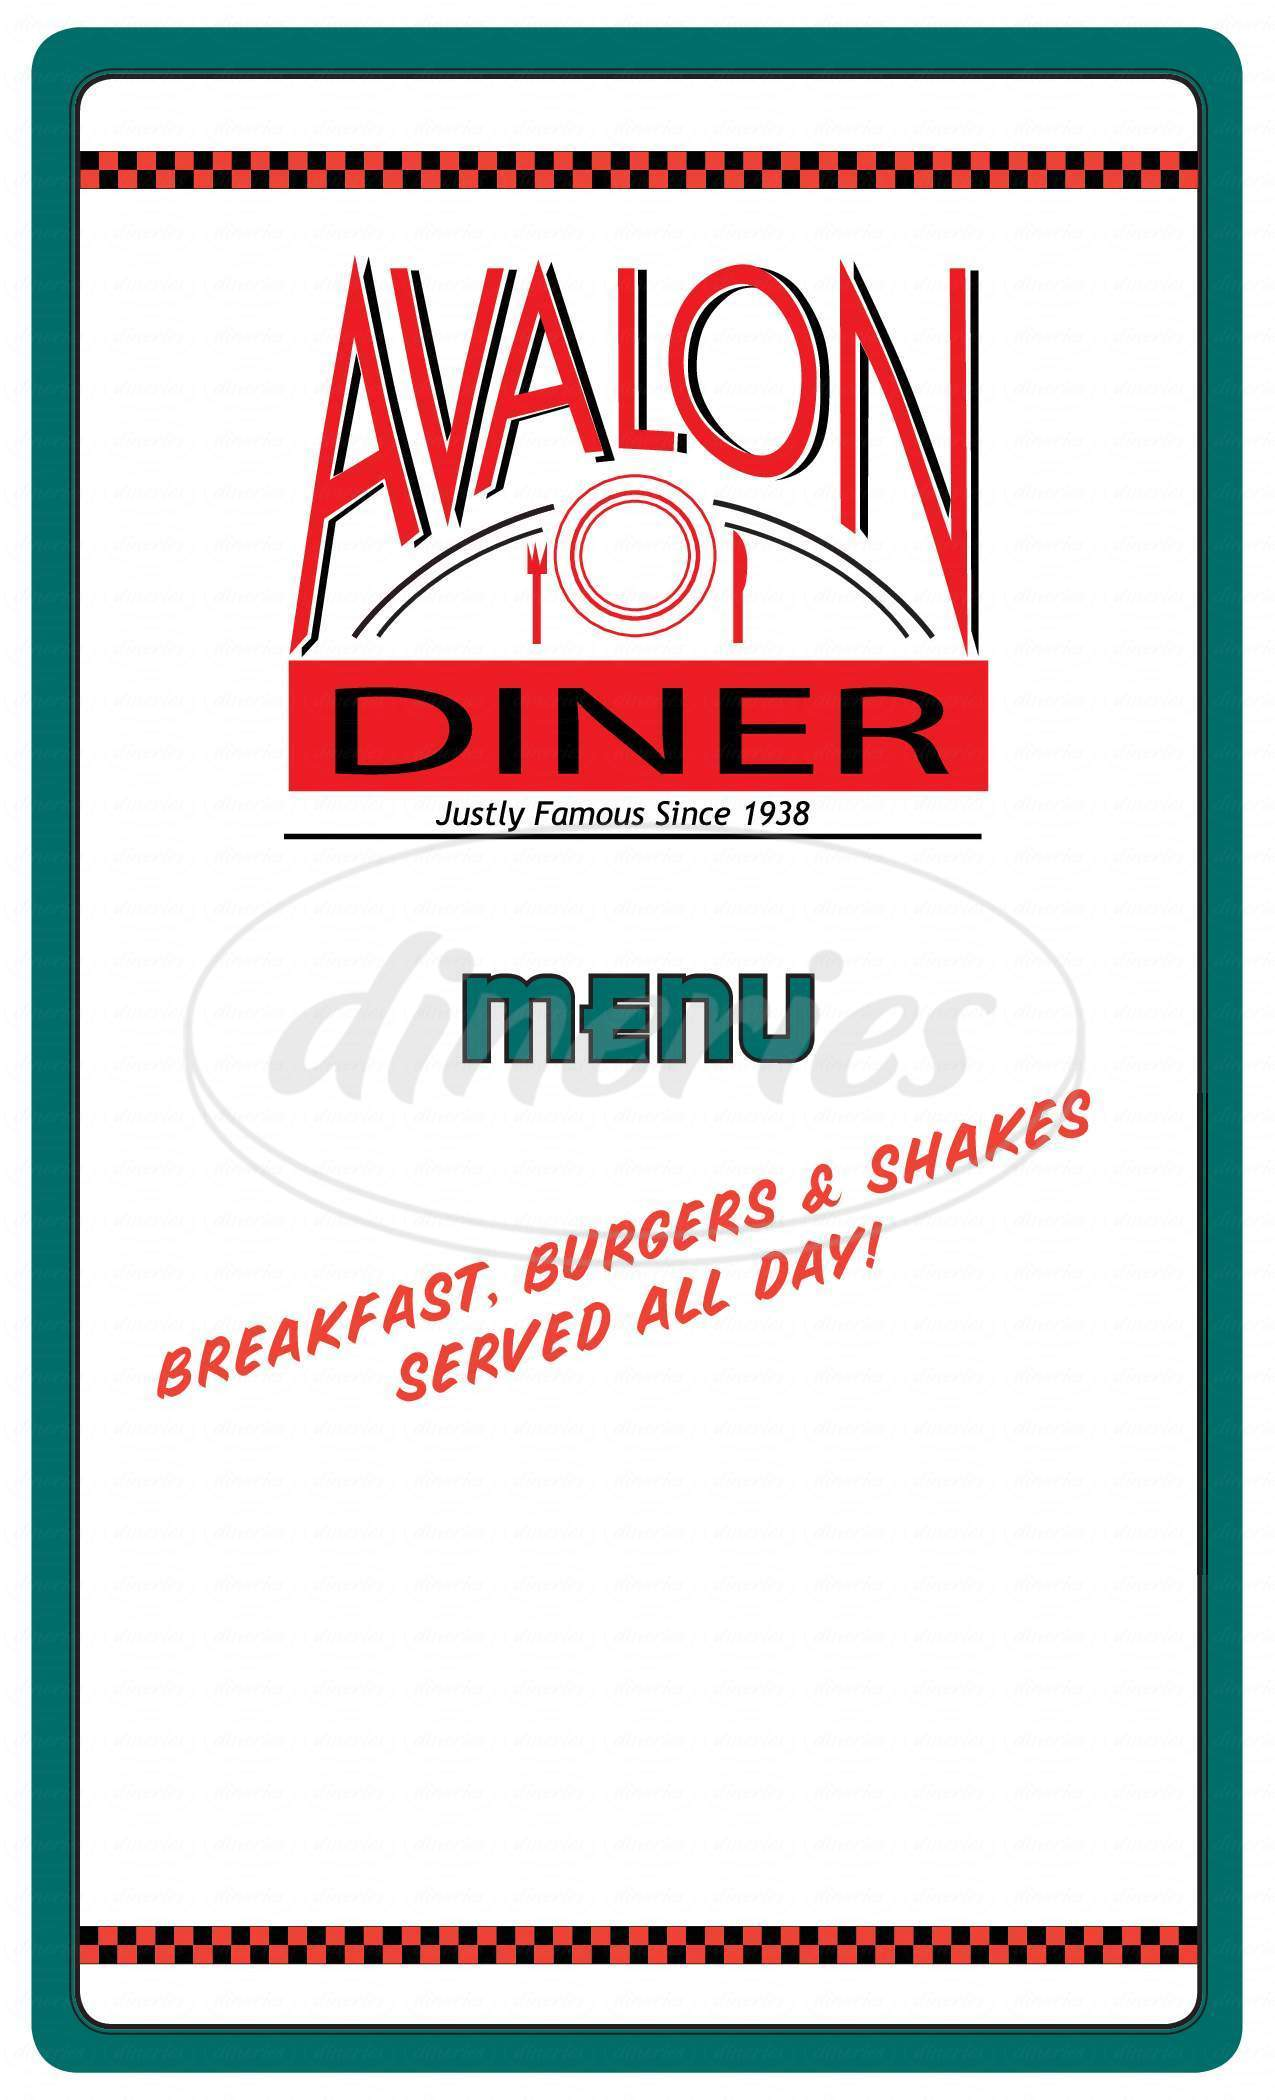 menu for Avalon Diner